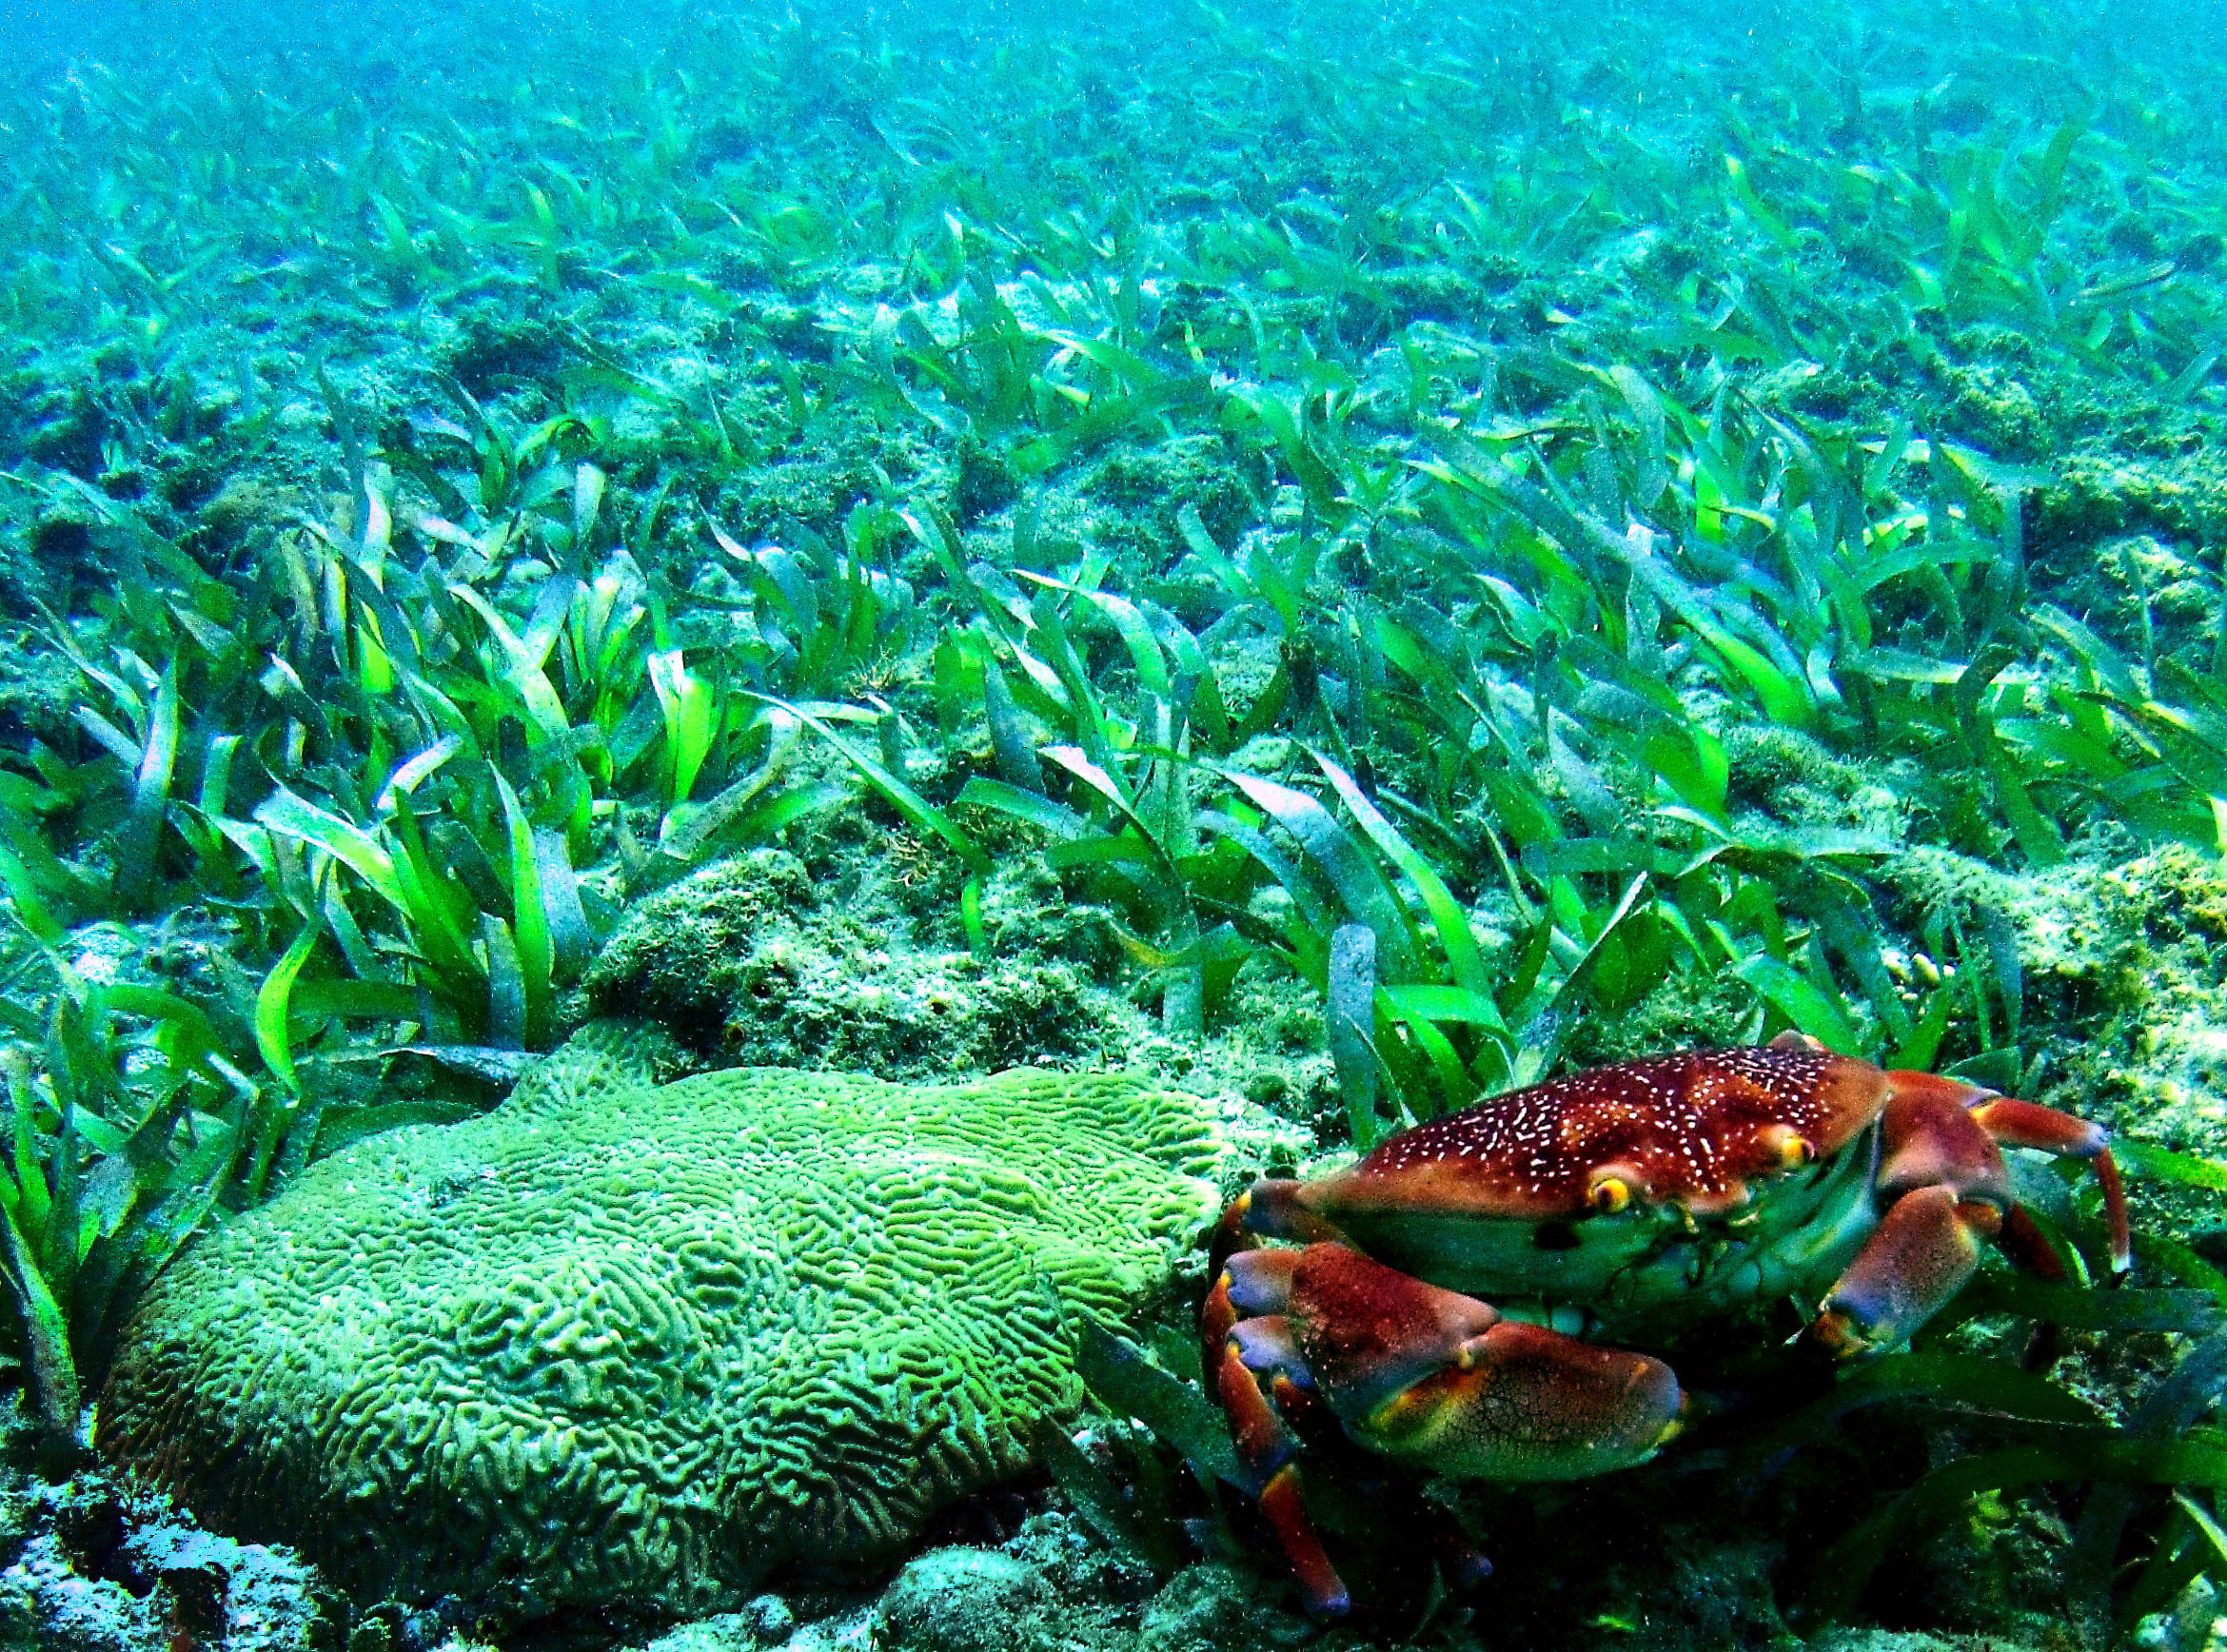 A batwing coral crab ( Carpilius corallinus ) stands beside a colony of knobby brain coral ( Pseudodiploria clivosa ) amidst a seagrass bed.